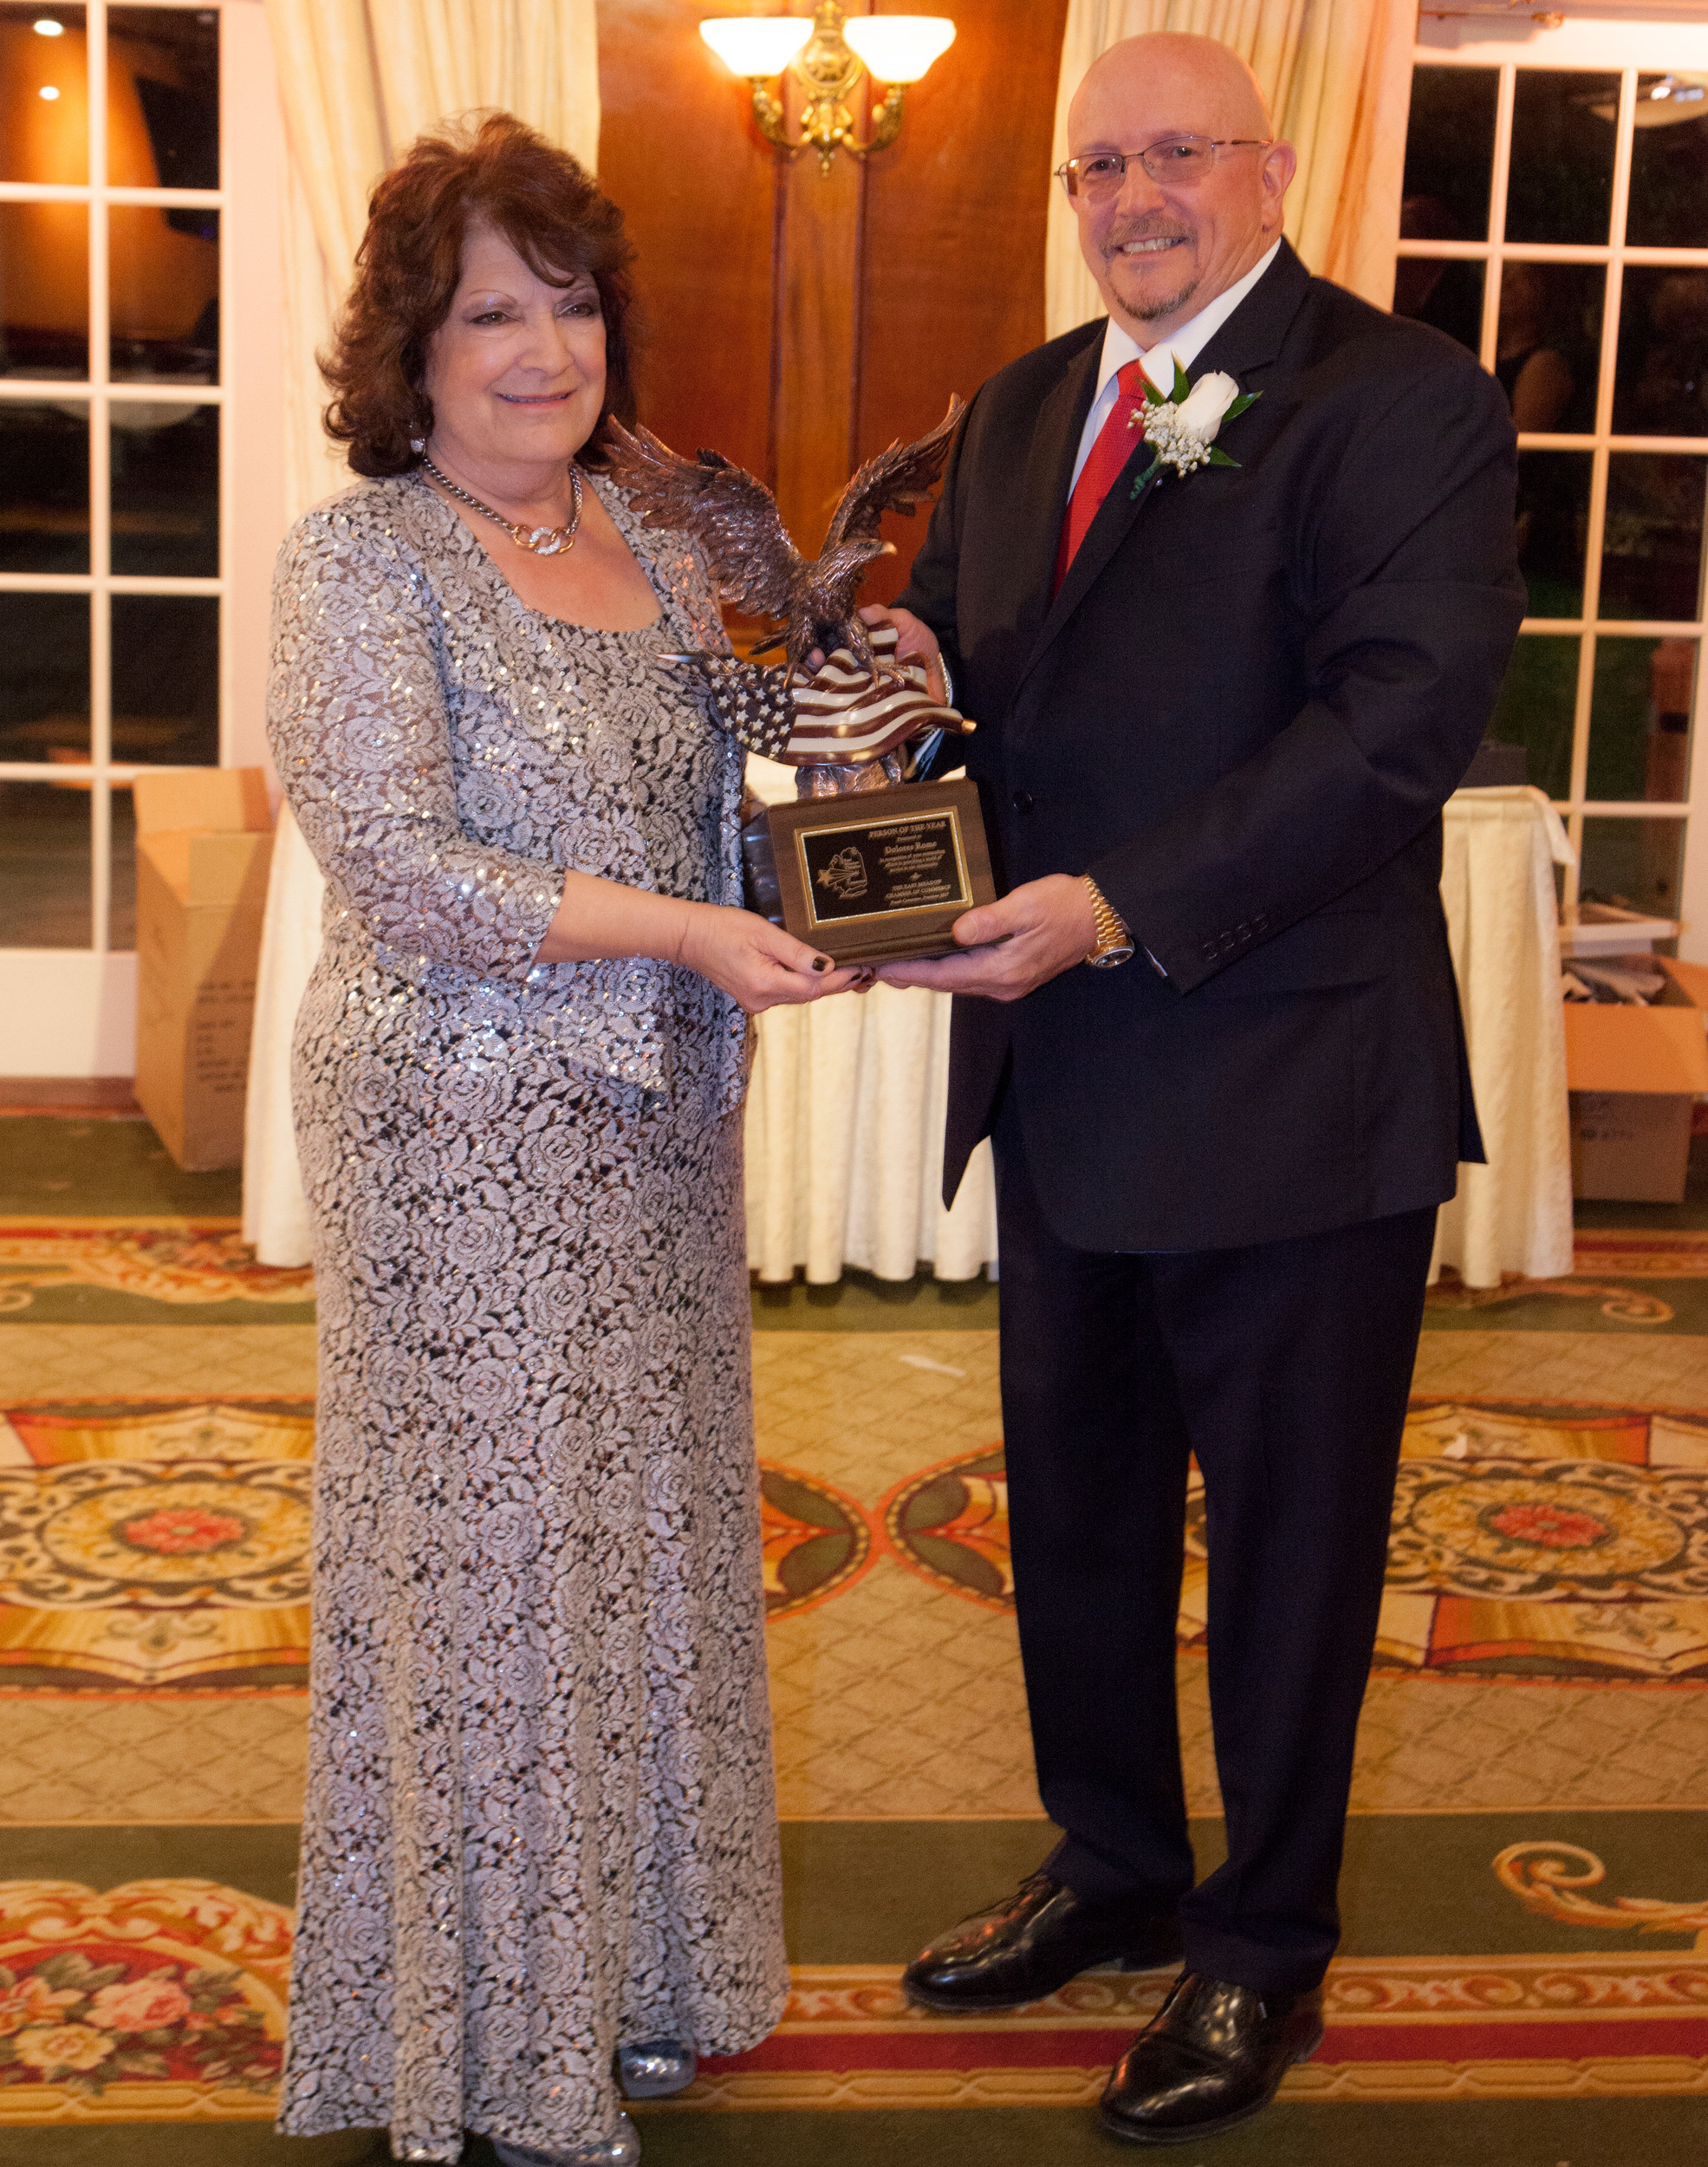 Dolores Rome received the East Meadow Chamber of Commerce's 2017 Person of the Year Award from past chamber President Richard Bivone.